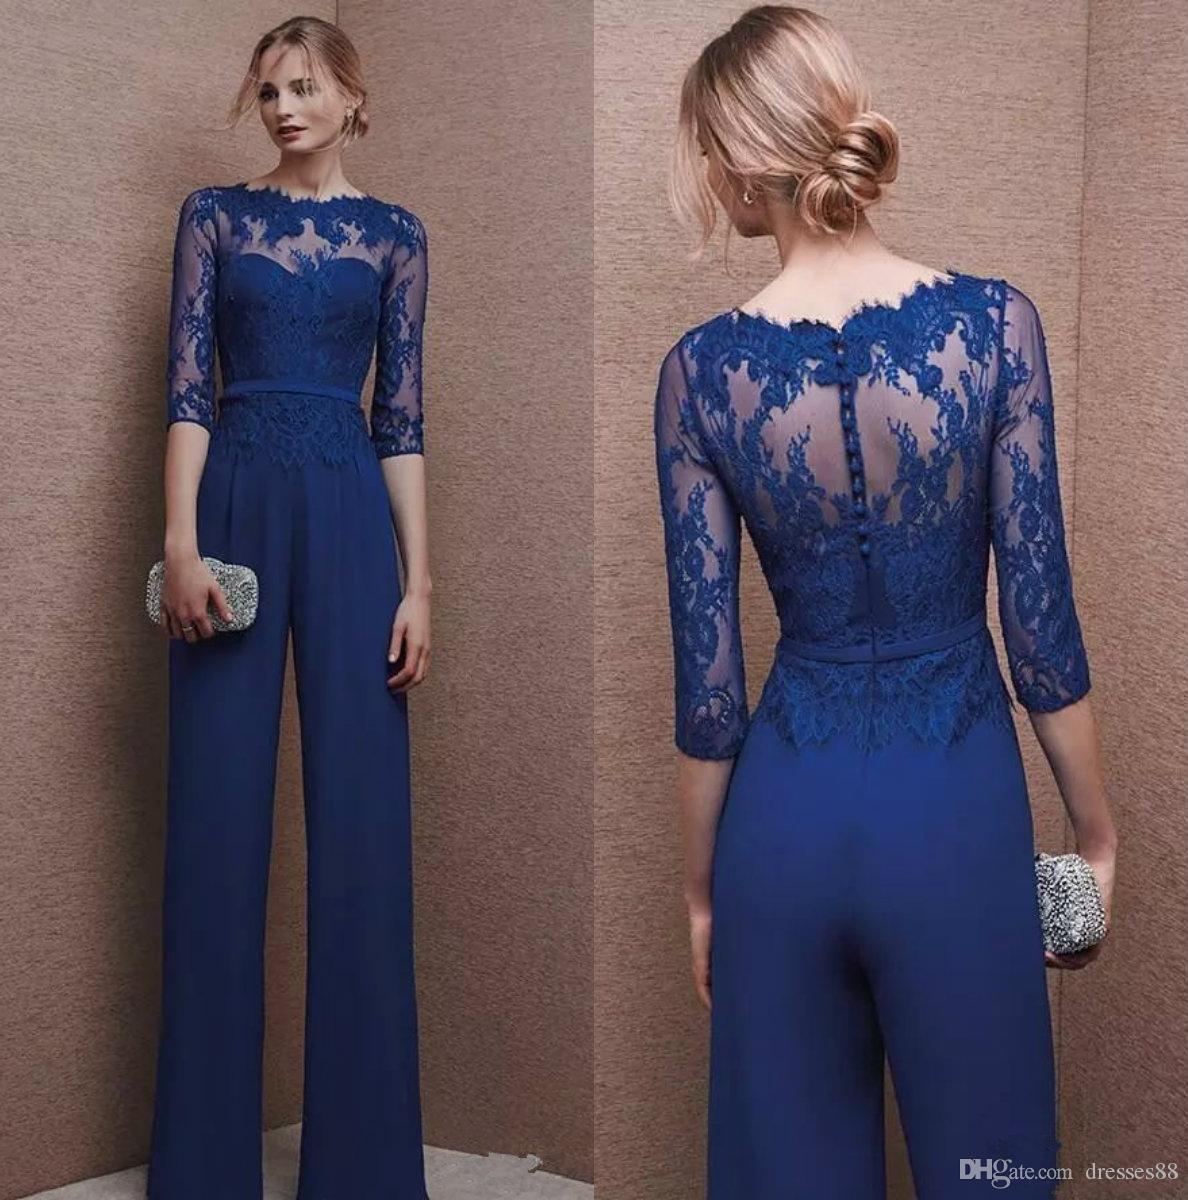 Royal Blue 2019 Plus Size Mother Of Bride Pant Suit 3/4 Lace Sleeve Mother Jumpsuit Chiffon Cocktail Party Evening Dresses Custom Made